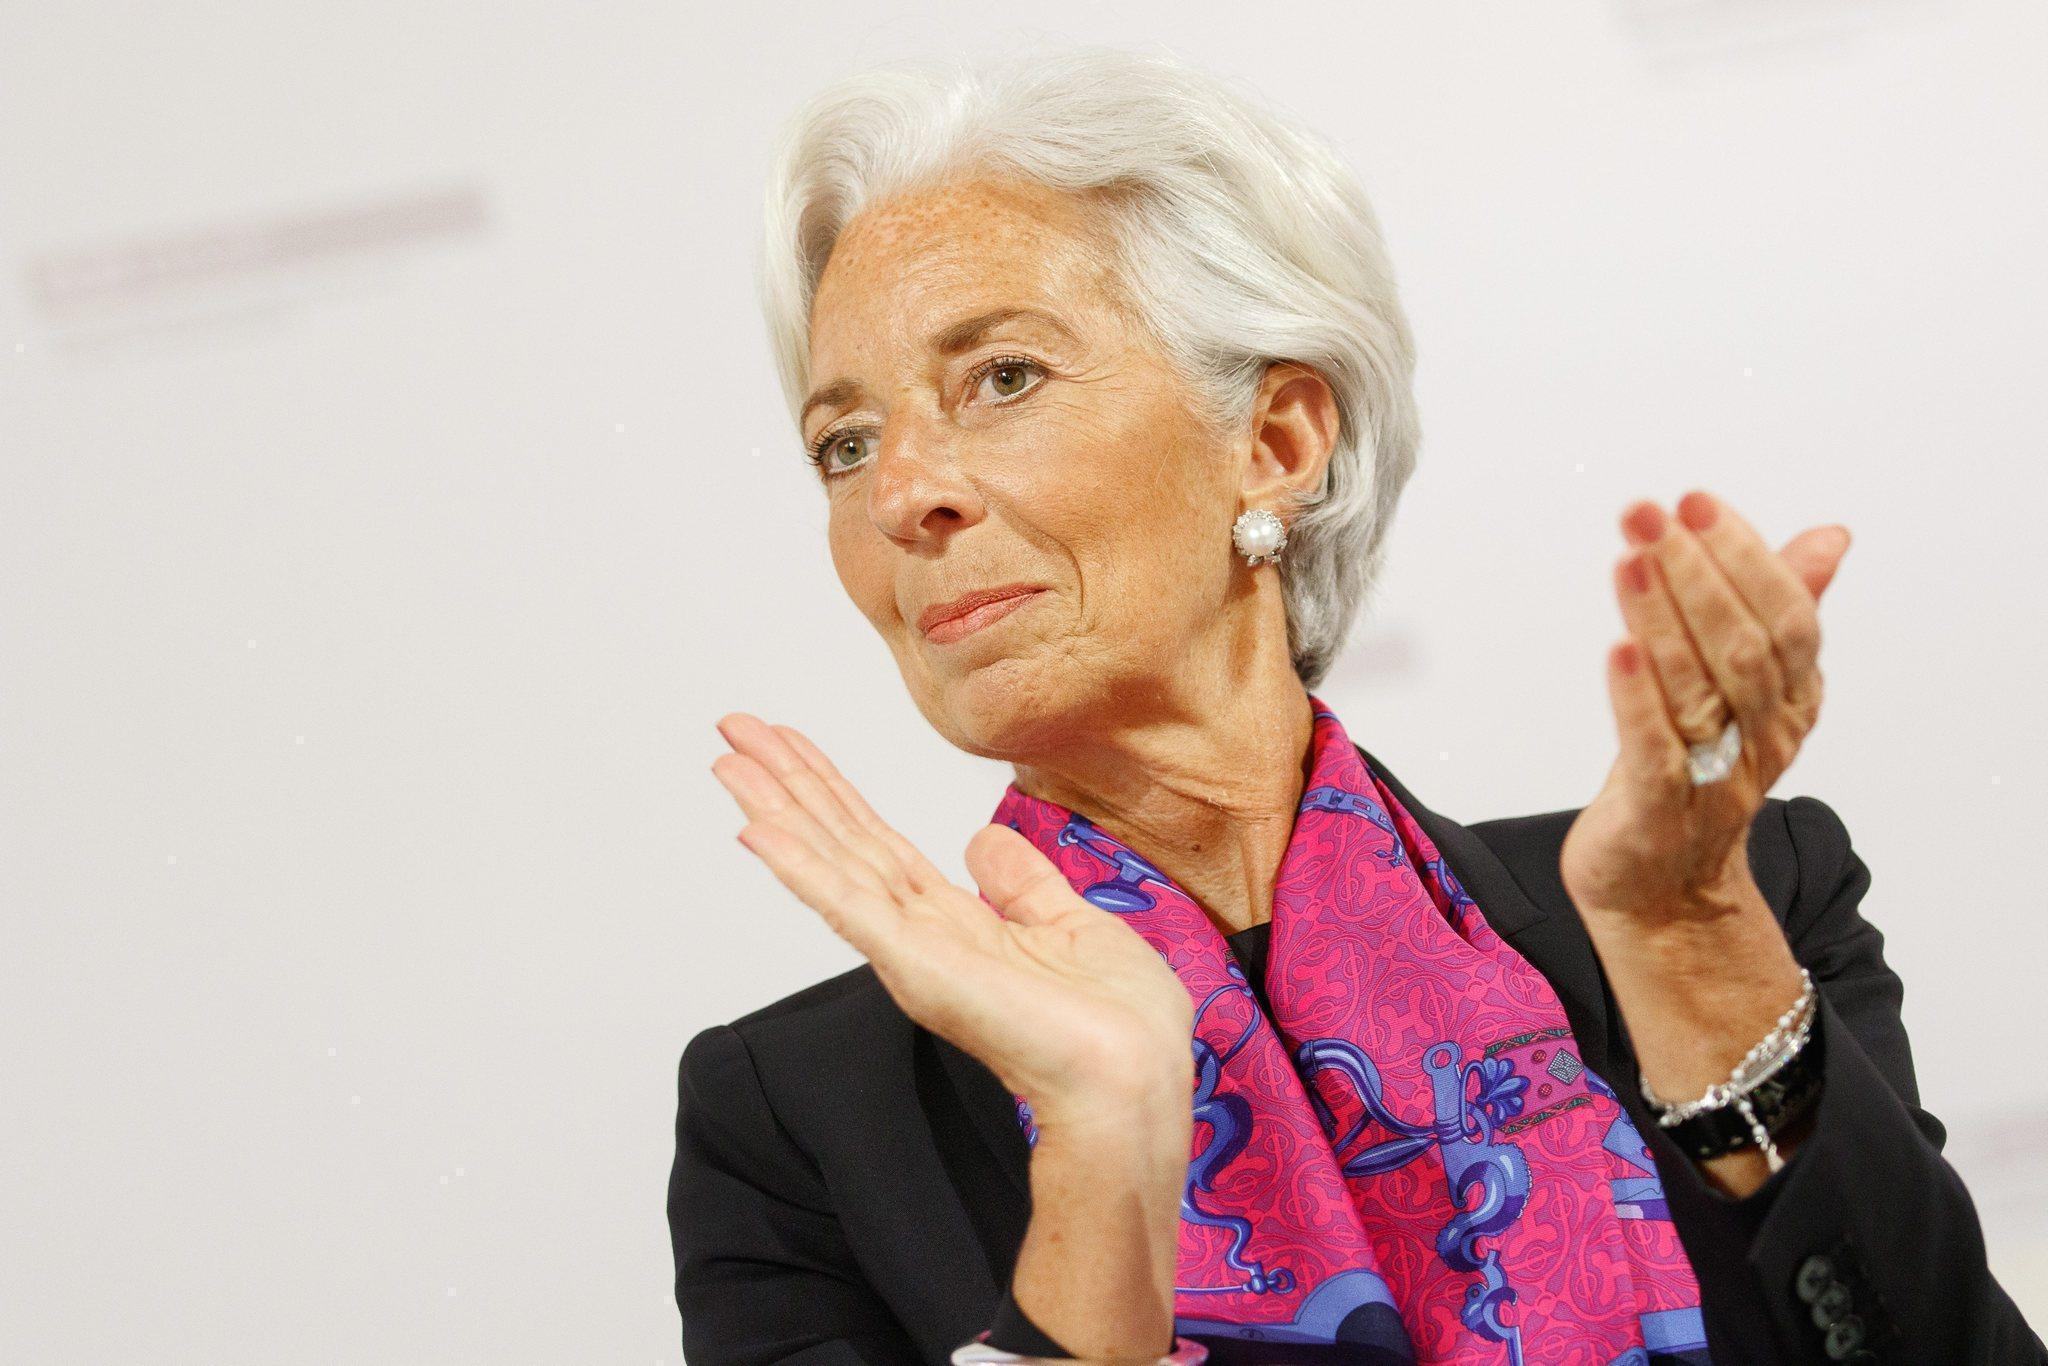 IMF says U.S. should raise minimum wage, offer paid maternity leave and overhaul taxes